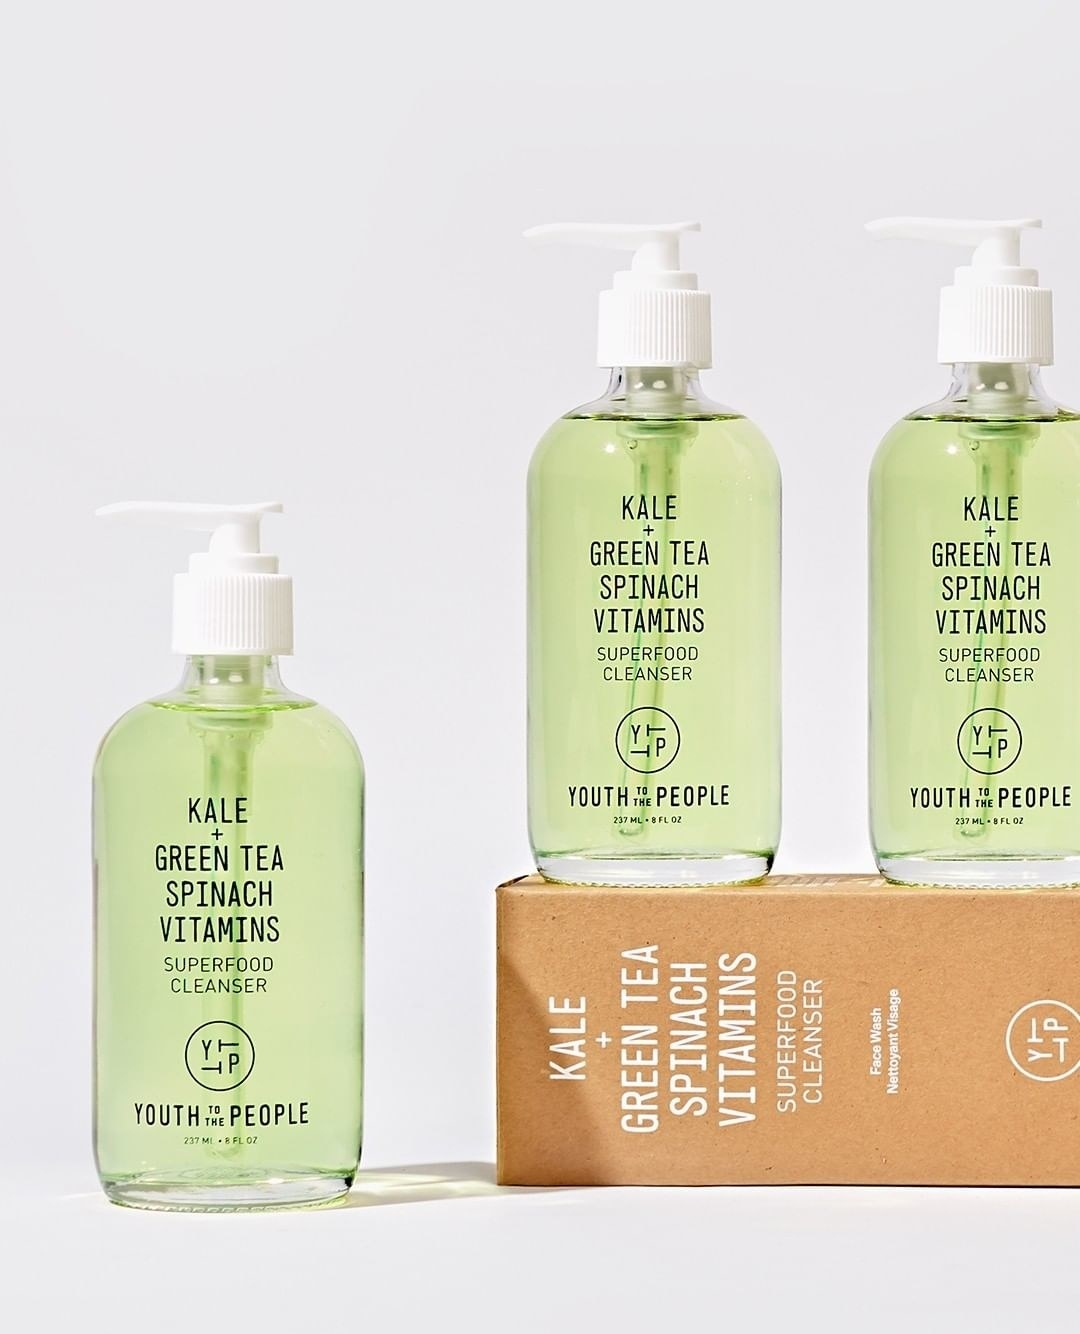 A trio of facial cleansers in transparent glass bottles arranged on a simple background